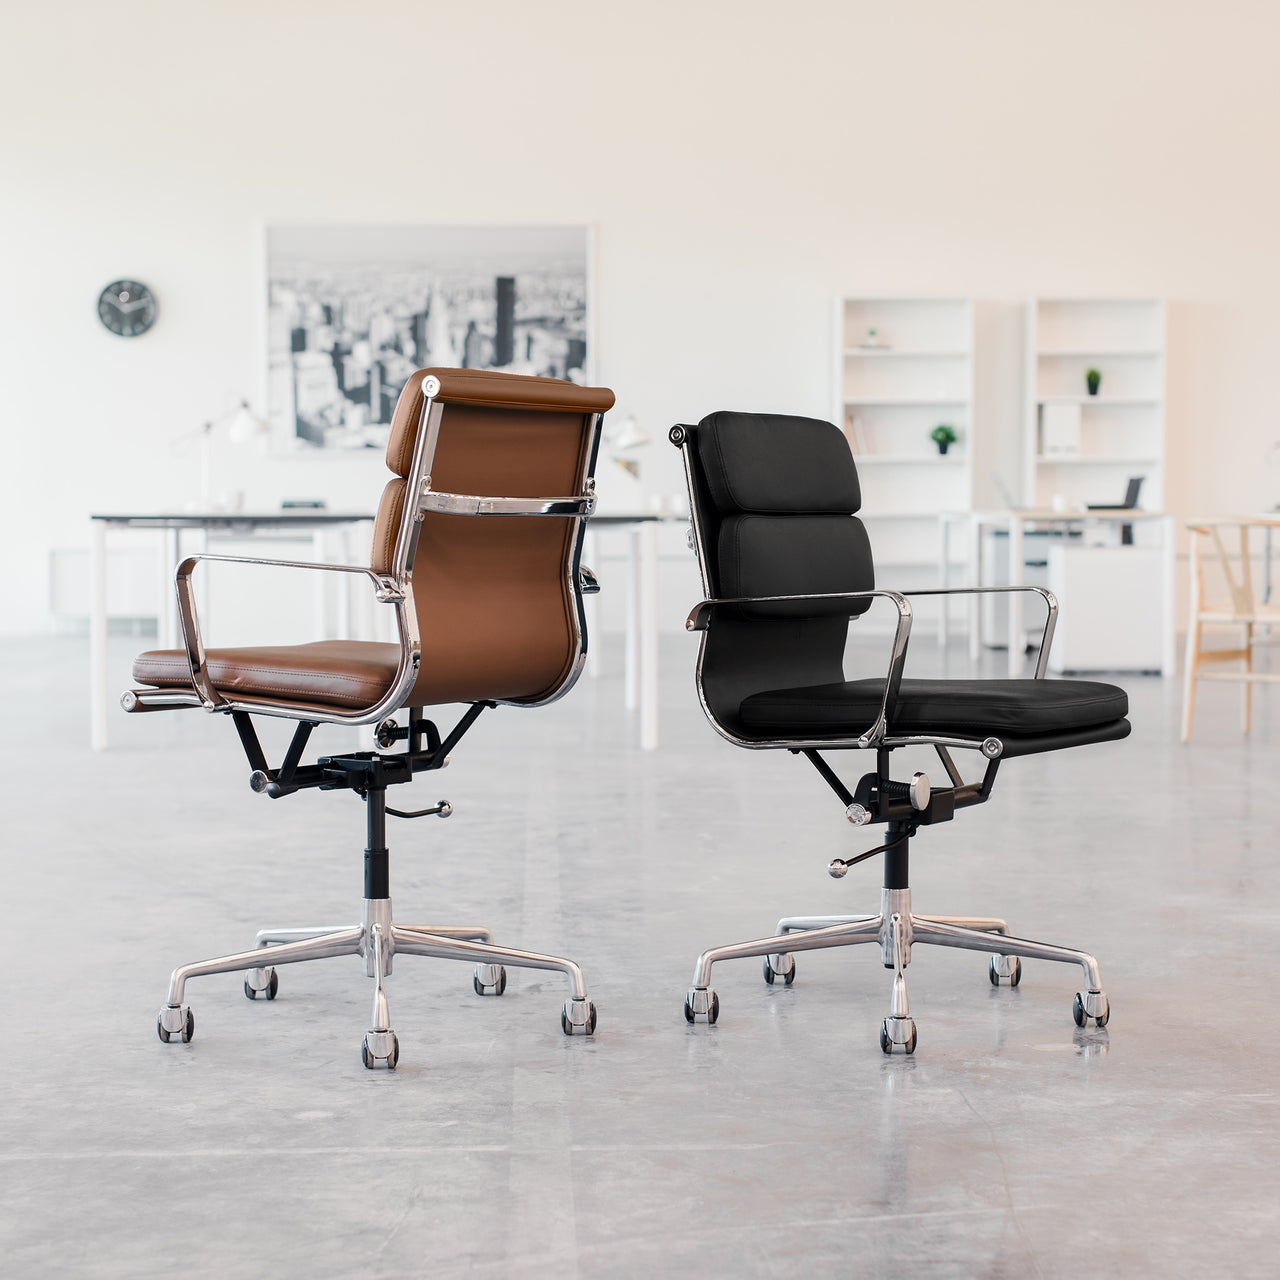 SOHO Soft Pad Management Chair (Charcoal Fabric) - SHIPS DECEMBER 13TH